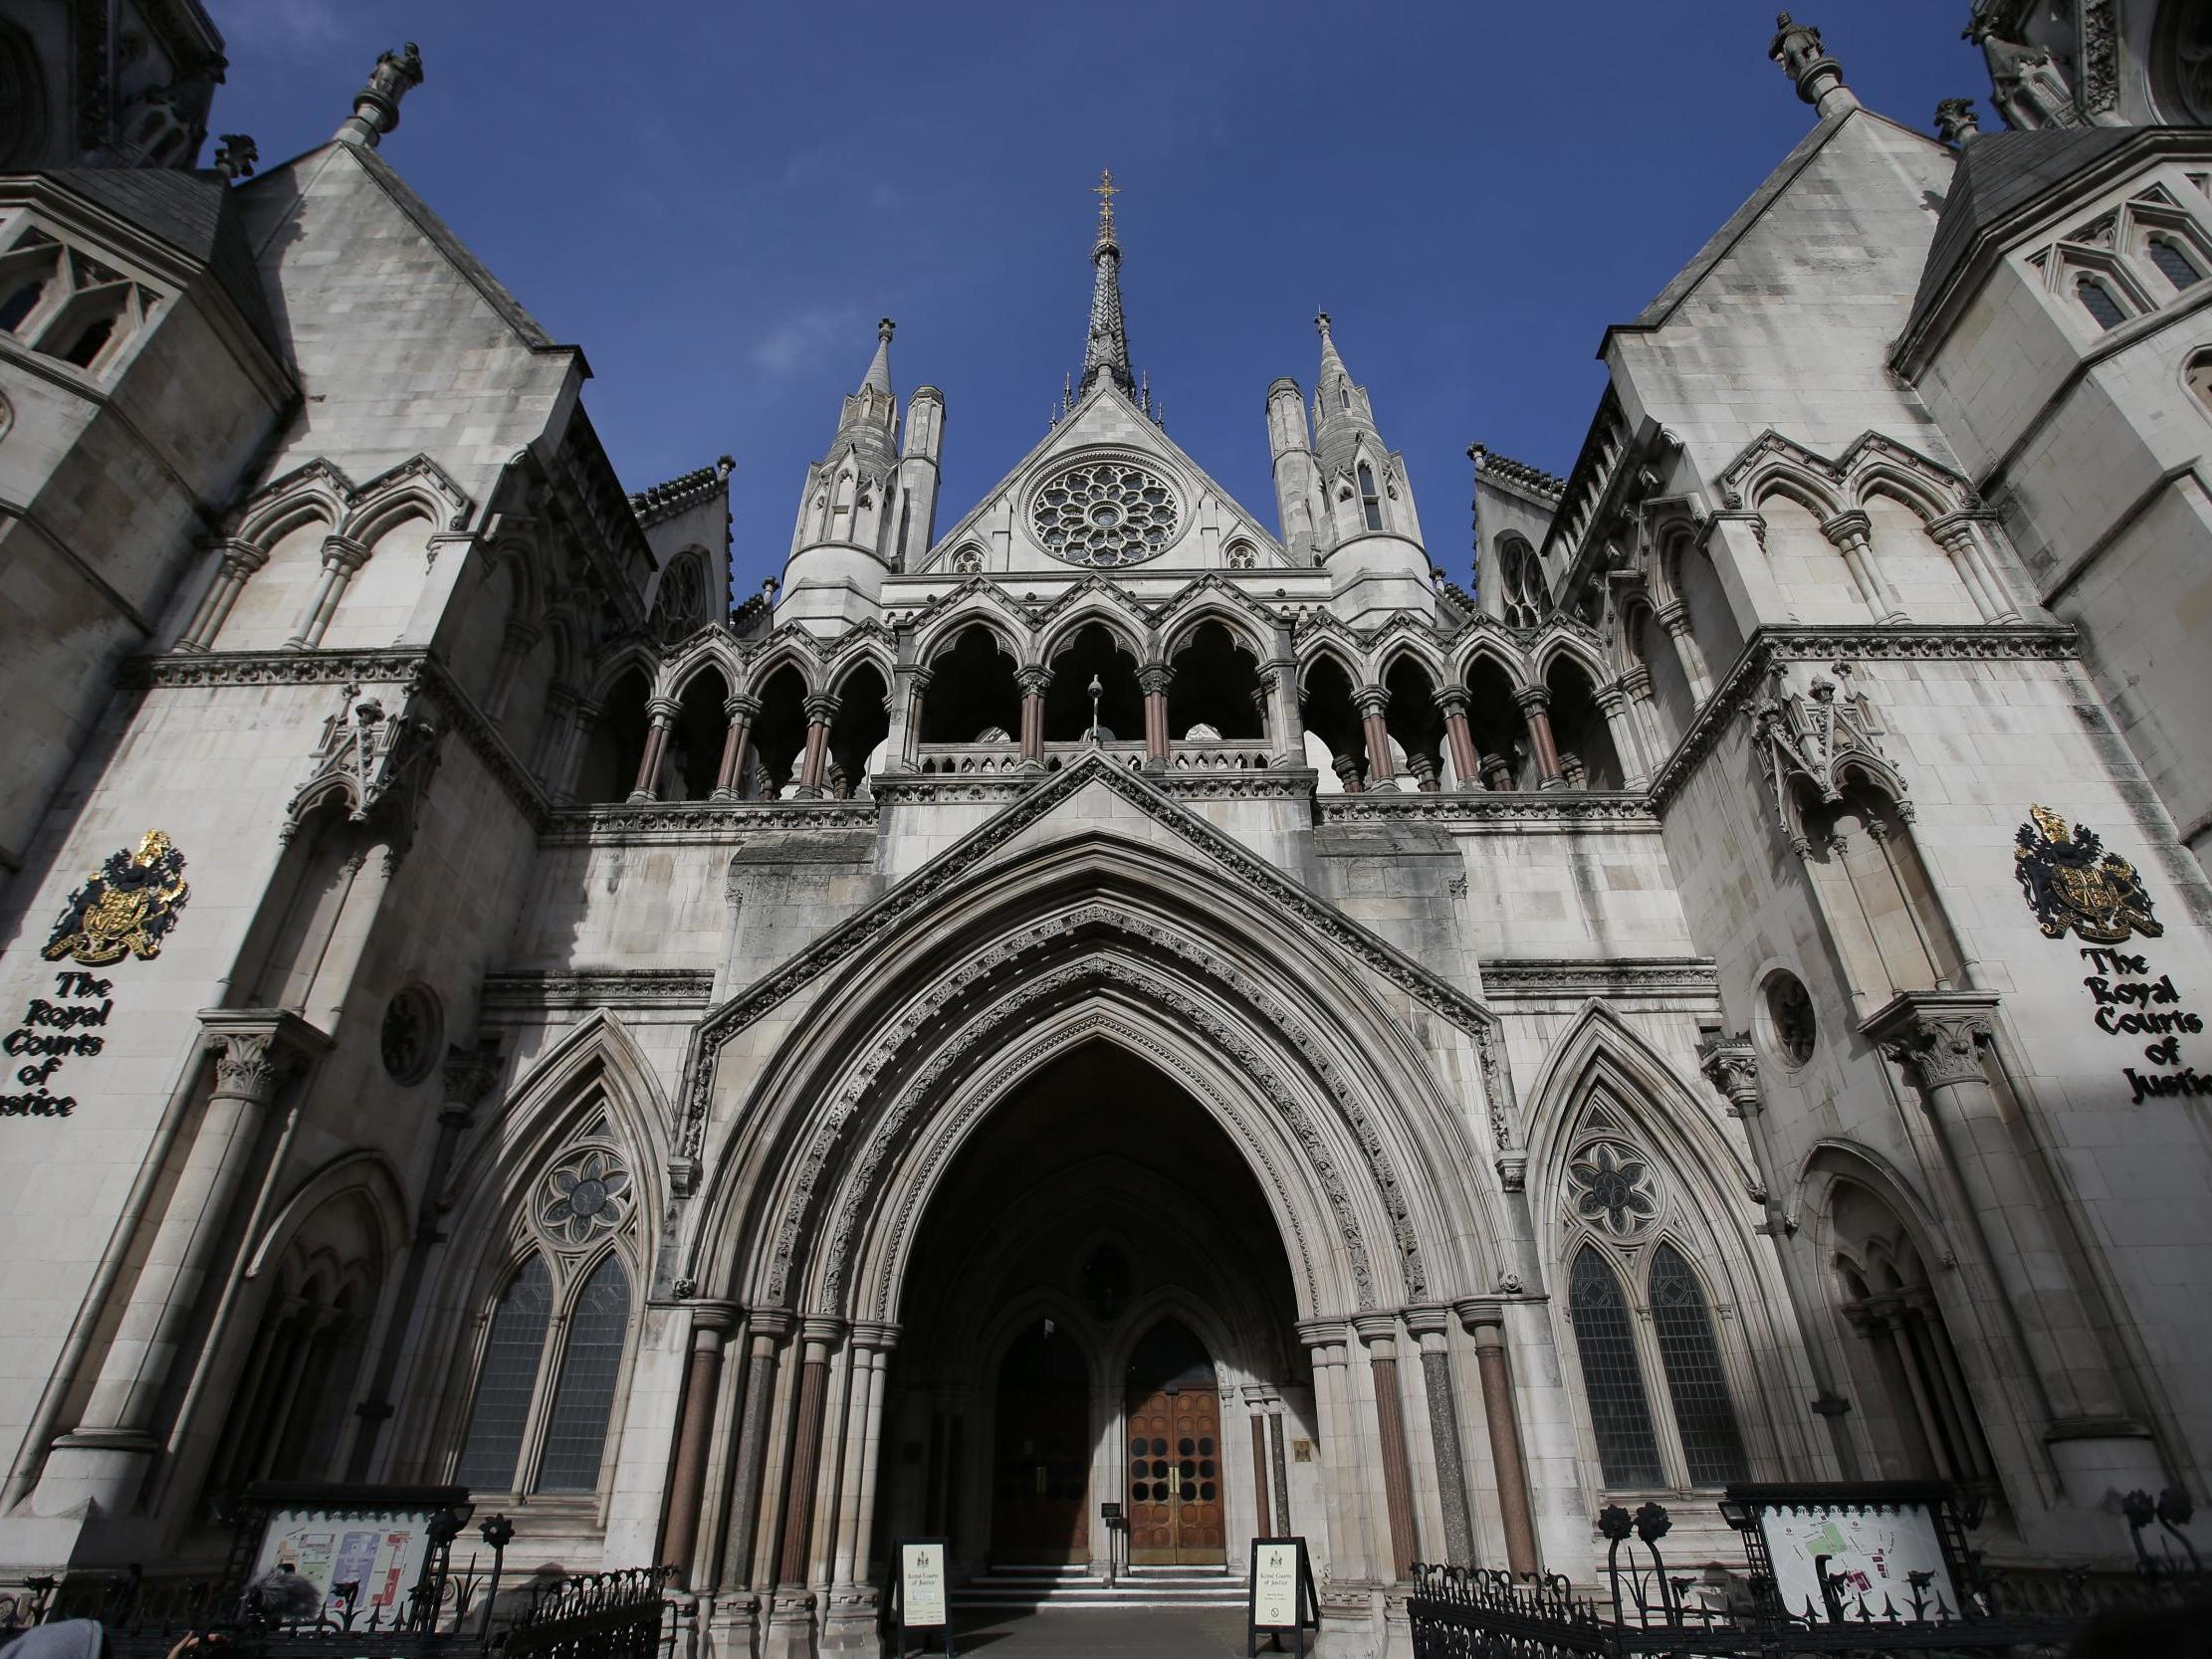 UK mining company faces landmark High Court case over alleged worker abuse in Sierra Leone